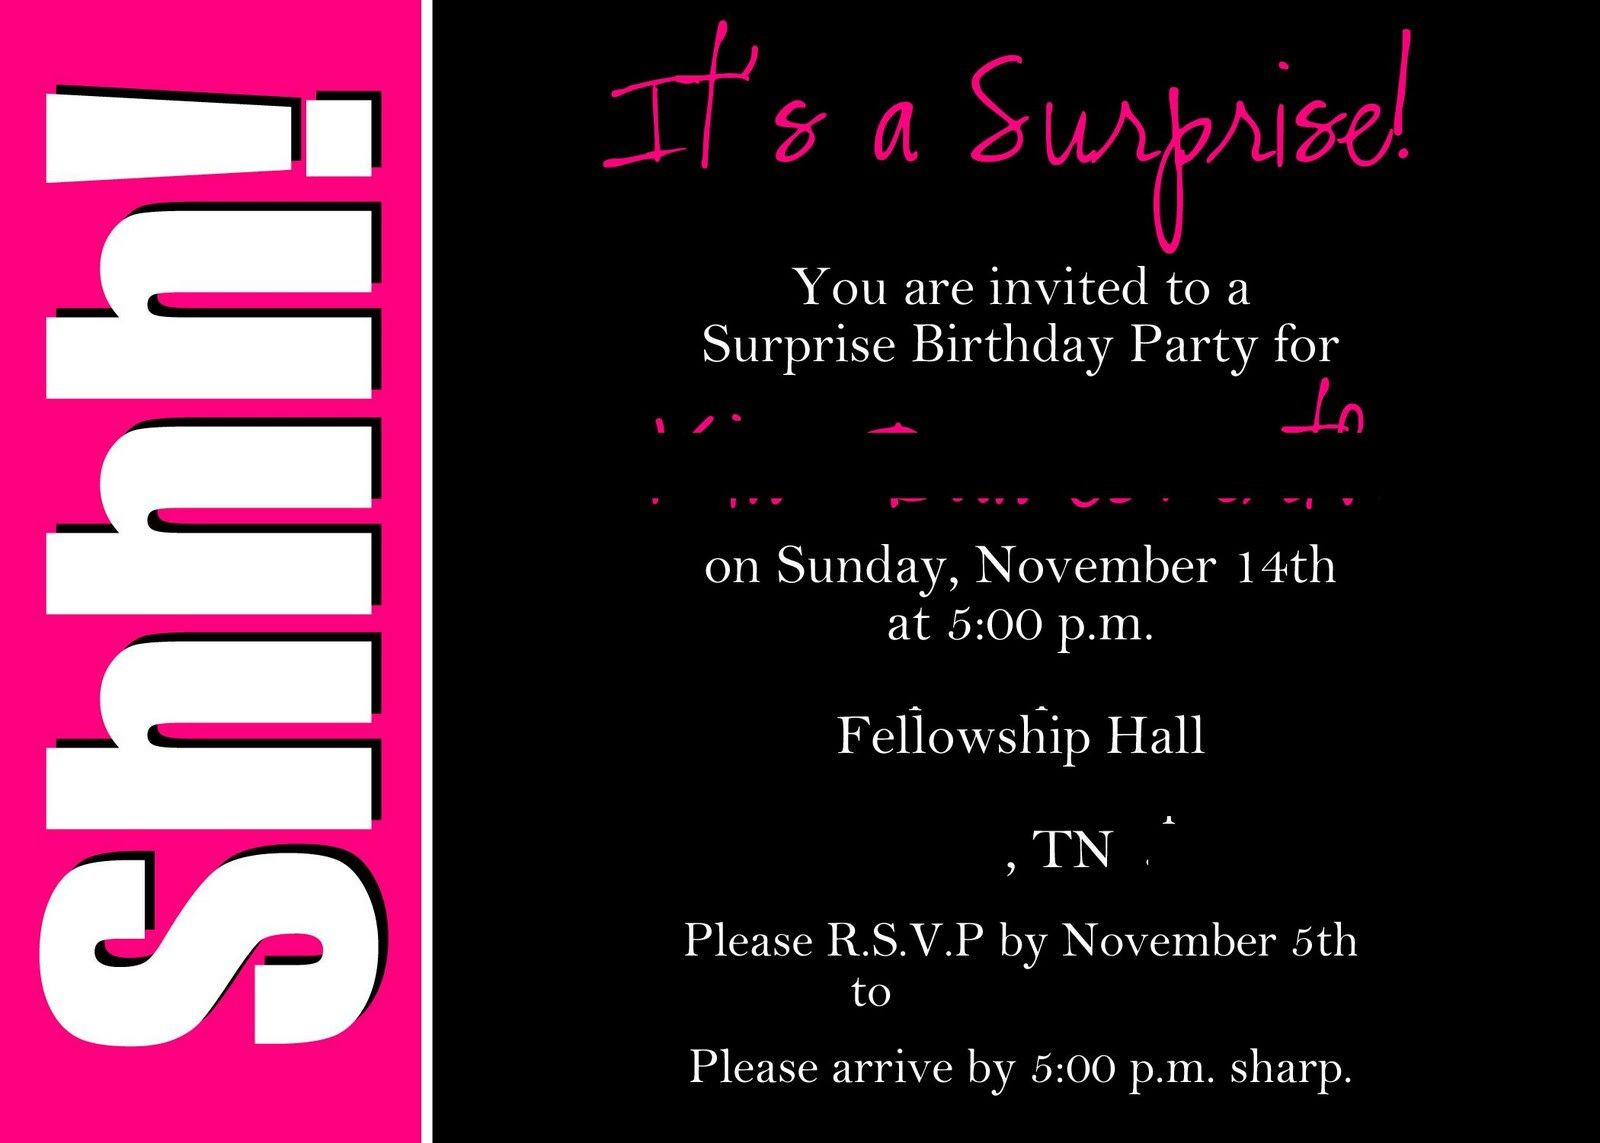 40th Surprise Birthday Party Invitations | Party invitations ...